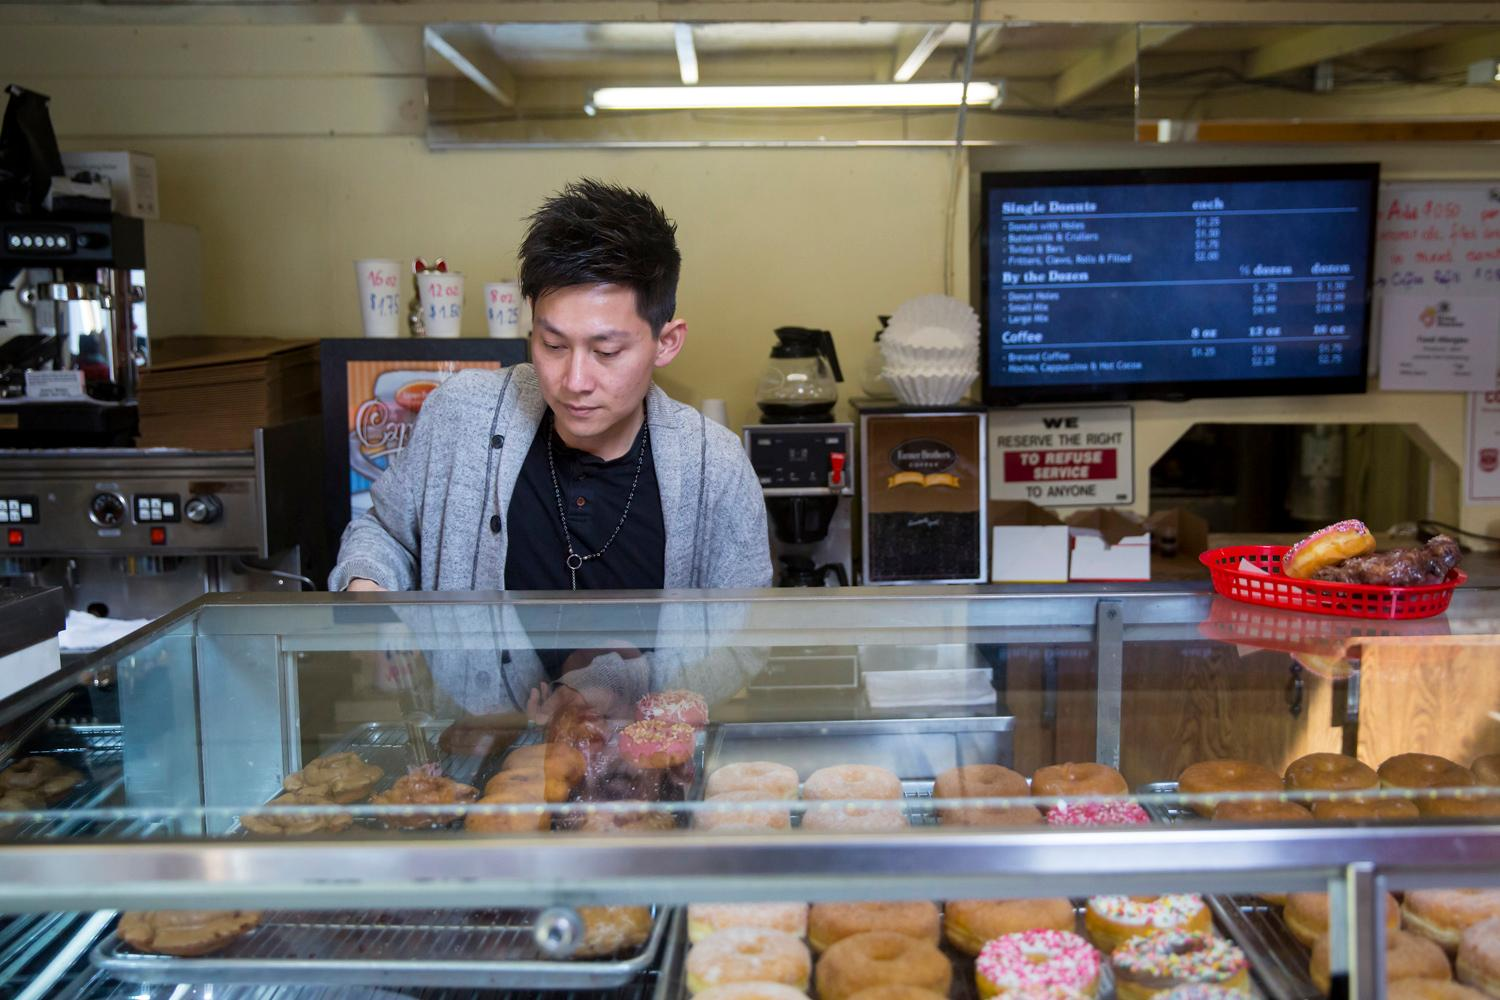 The King Donuts legacy of laundromat/donut-joint/teriyaki place lives on in Rainier Beach with new owners who have only made slight modifications to the menu (like adding Pad Thai). If you aren't familiar with the place - it's a quirky-Seattle Gem. While some were frightful things would change when the business sold in December 2016, the new Chhuor family owners plan to keep things the way they've been. (Sy Bean / Seattle Refined)